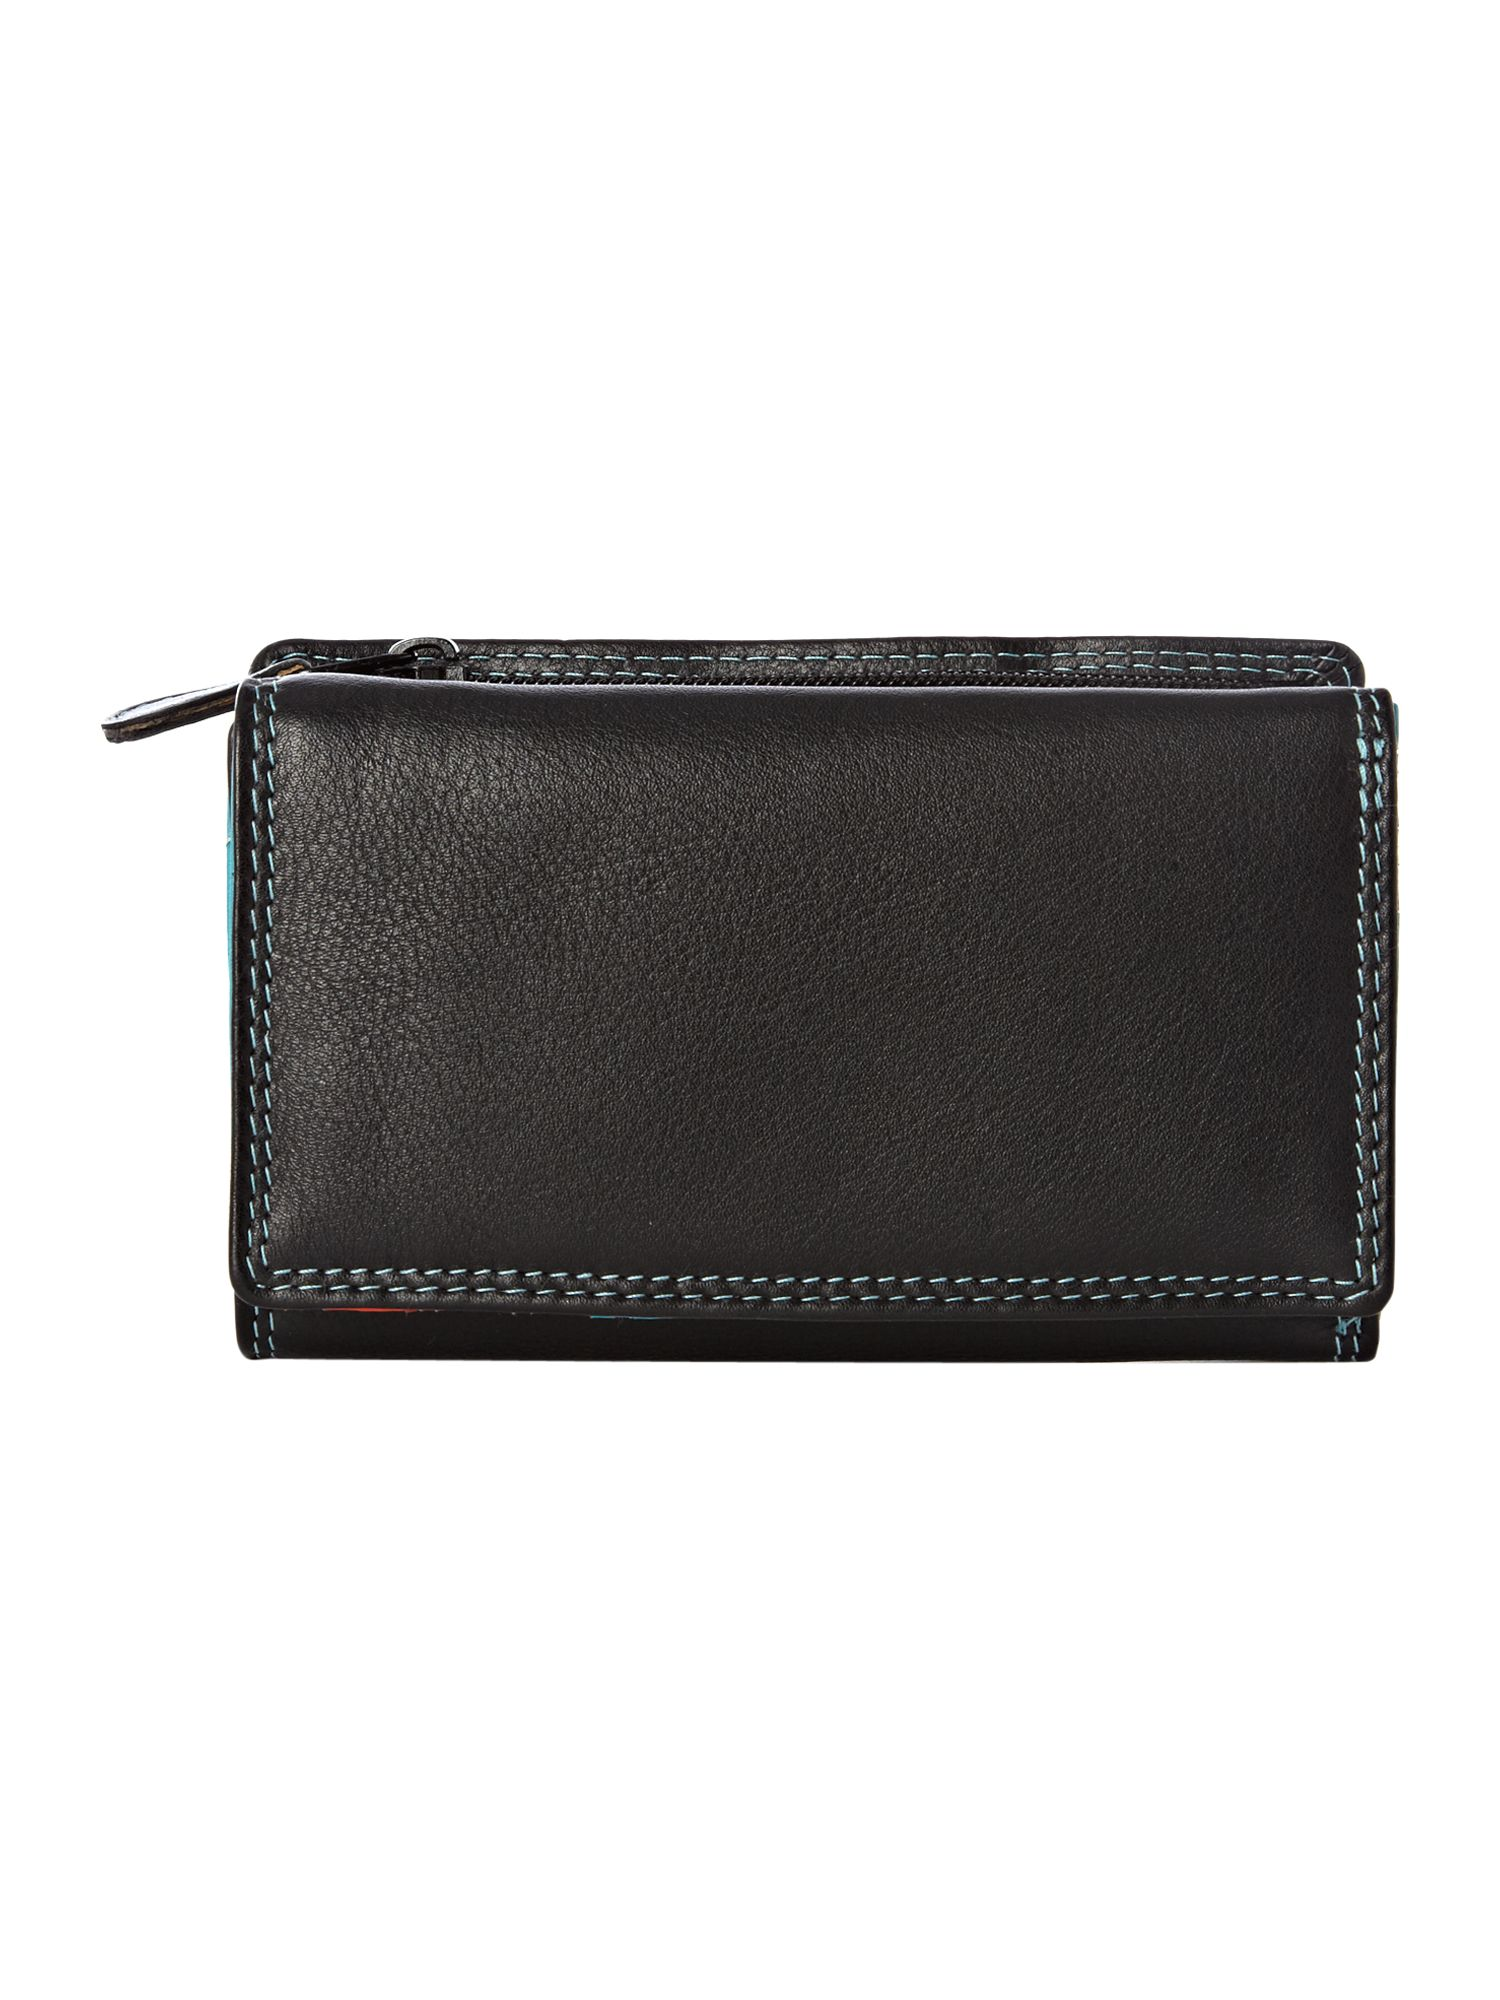 Black internal medium flapover purse